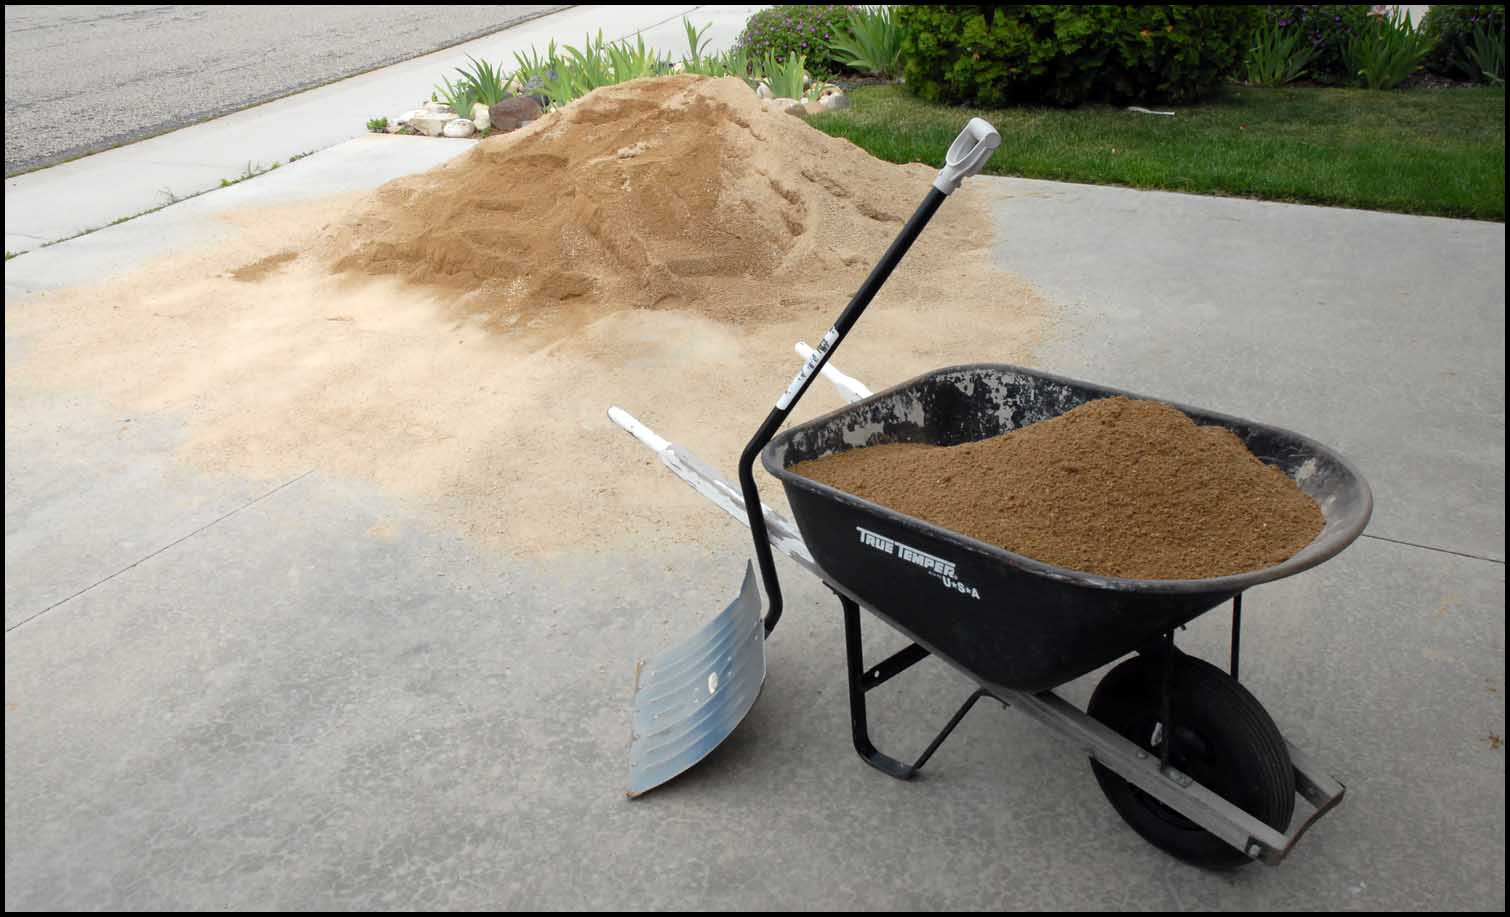 Picture of wheelbarrow full of dirt with a shovel next to it.